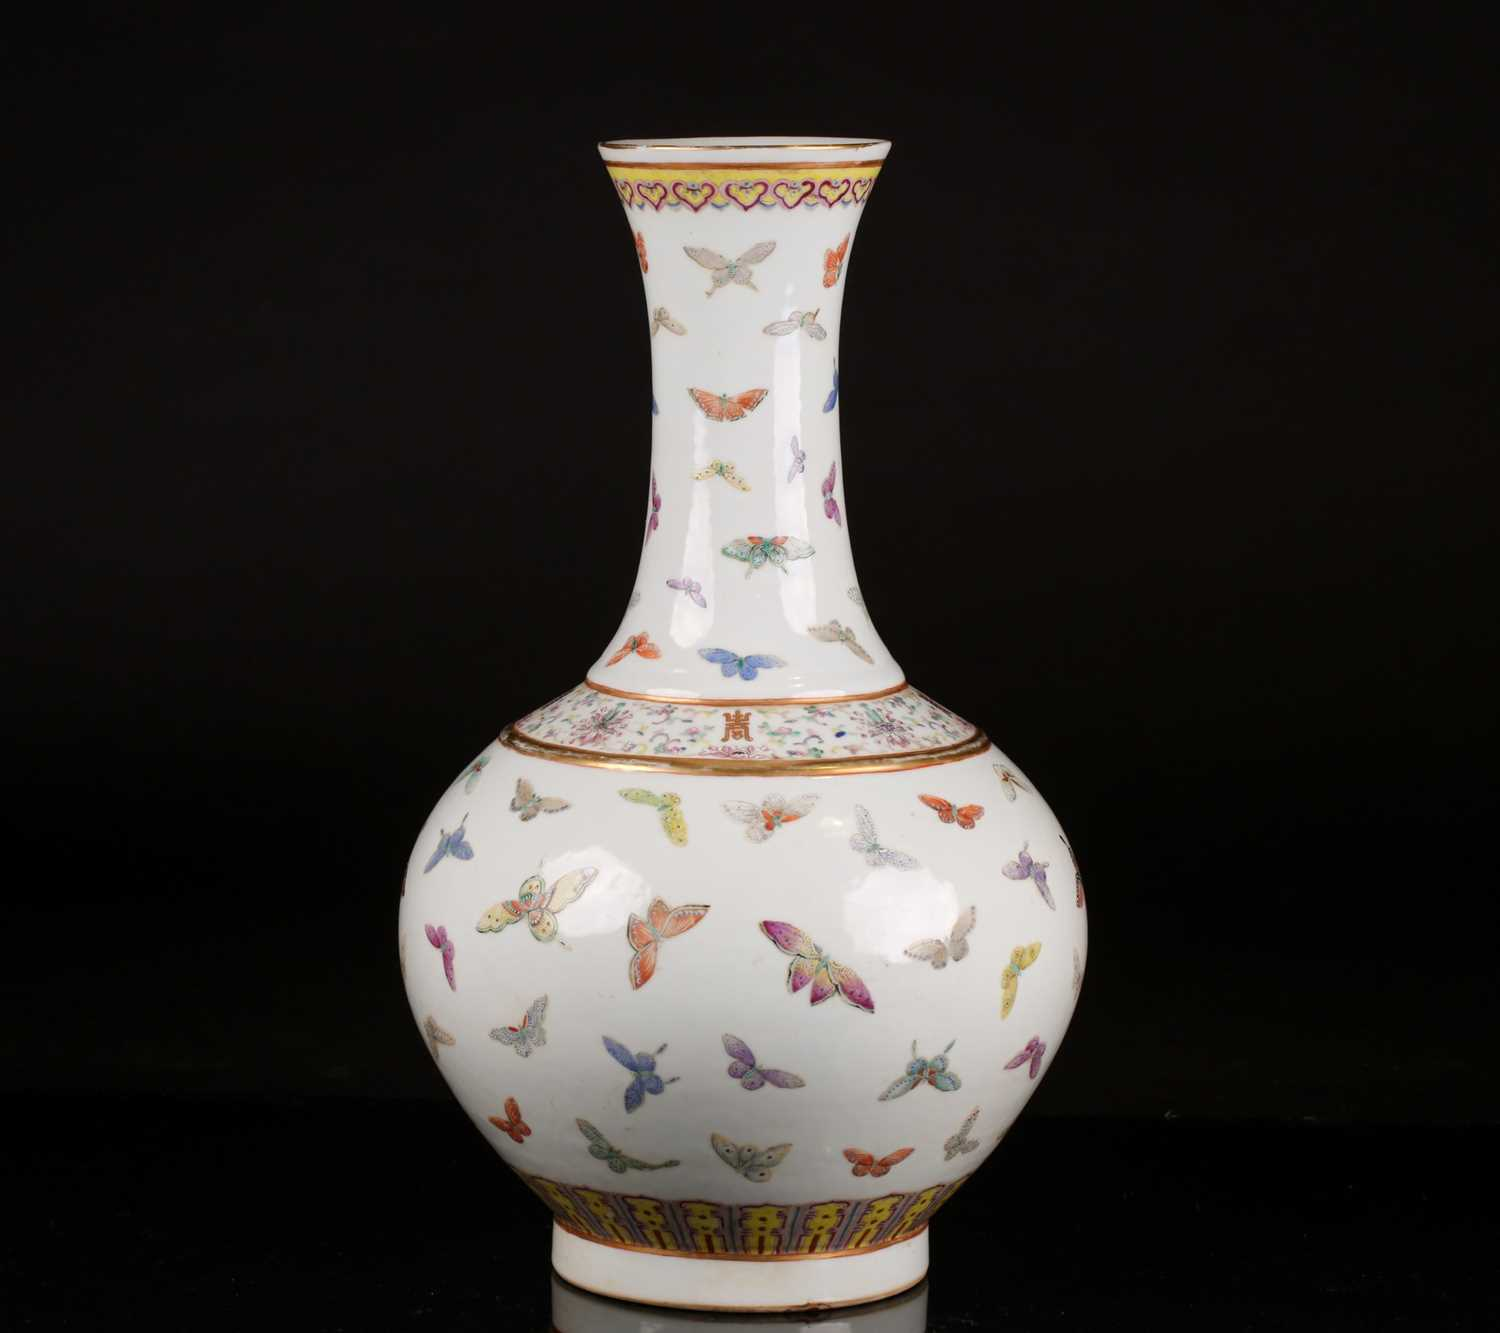 A Chinese butterfly vase with Guangxu mark